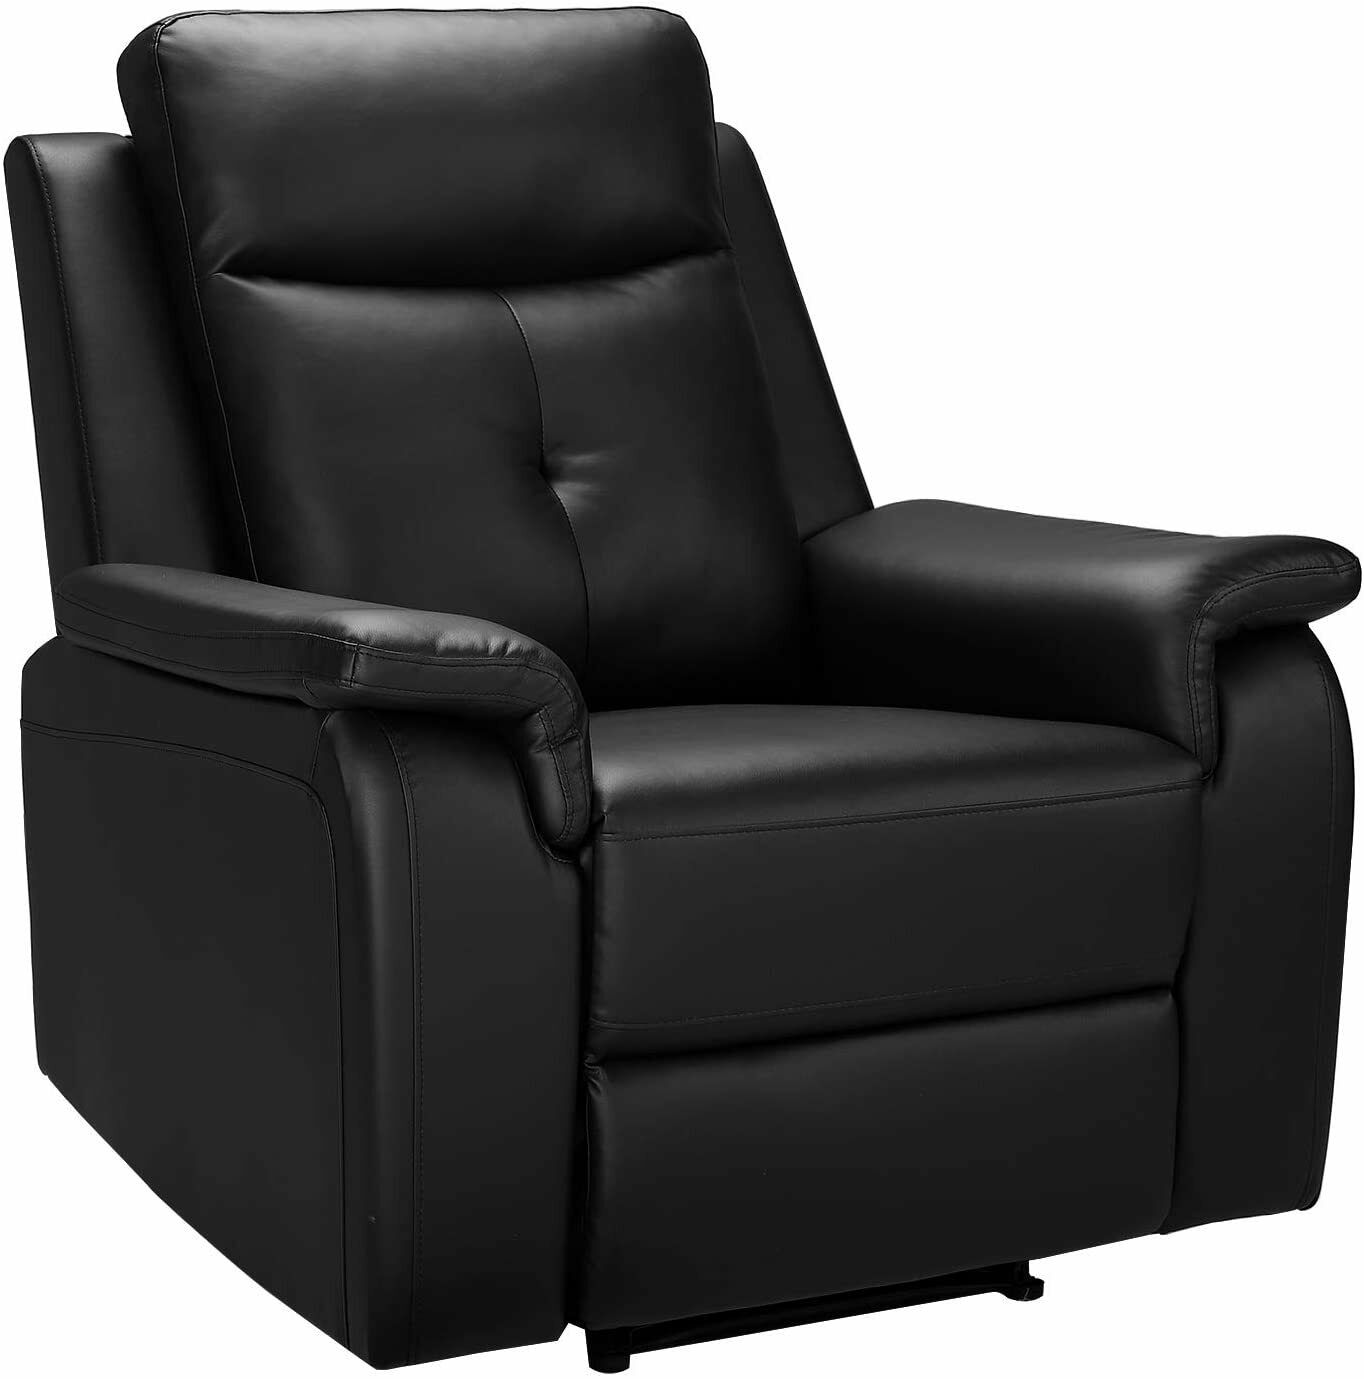 PU Leather Recliner Chair Padded Seat Sofa Chair for Living